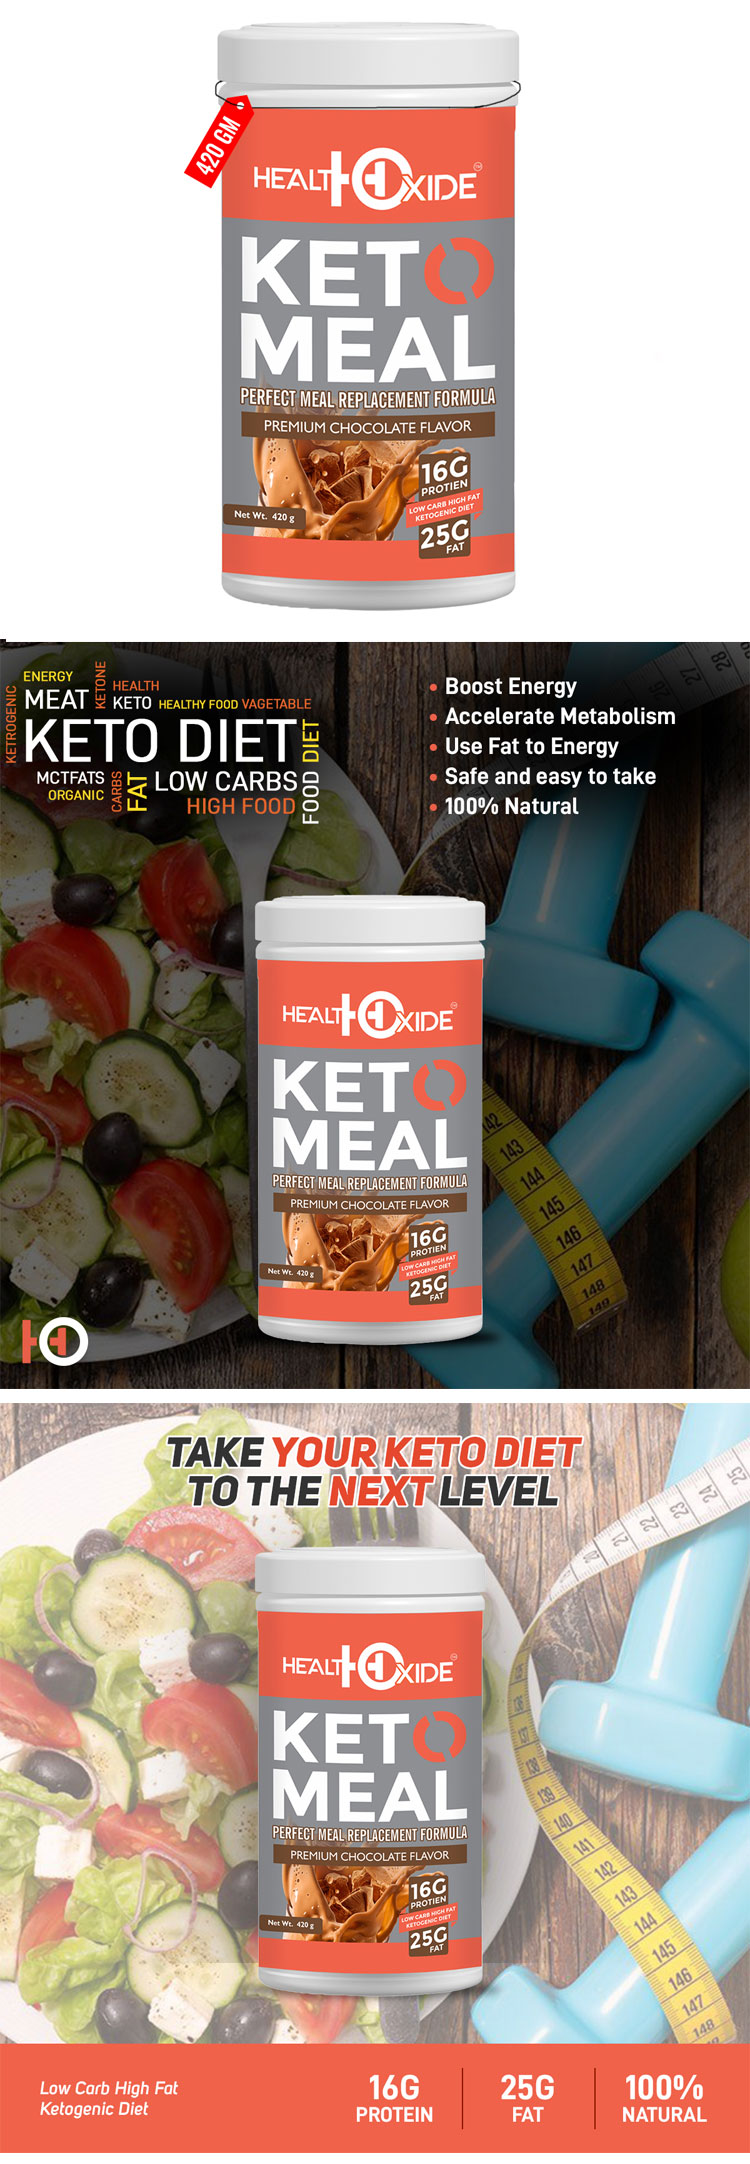 Diabetic Friendly High Protein Keto Diet Meal Replacement Supplement Powder Buy Keto Diet Meal Replacement Meal Replacement Supplement Meal Replacement Powder Product On Alibaba Com